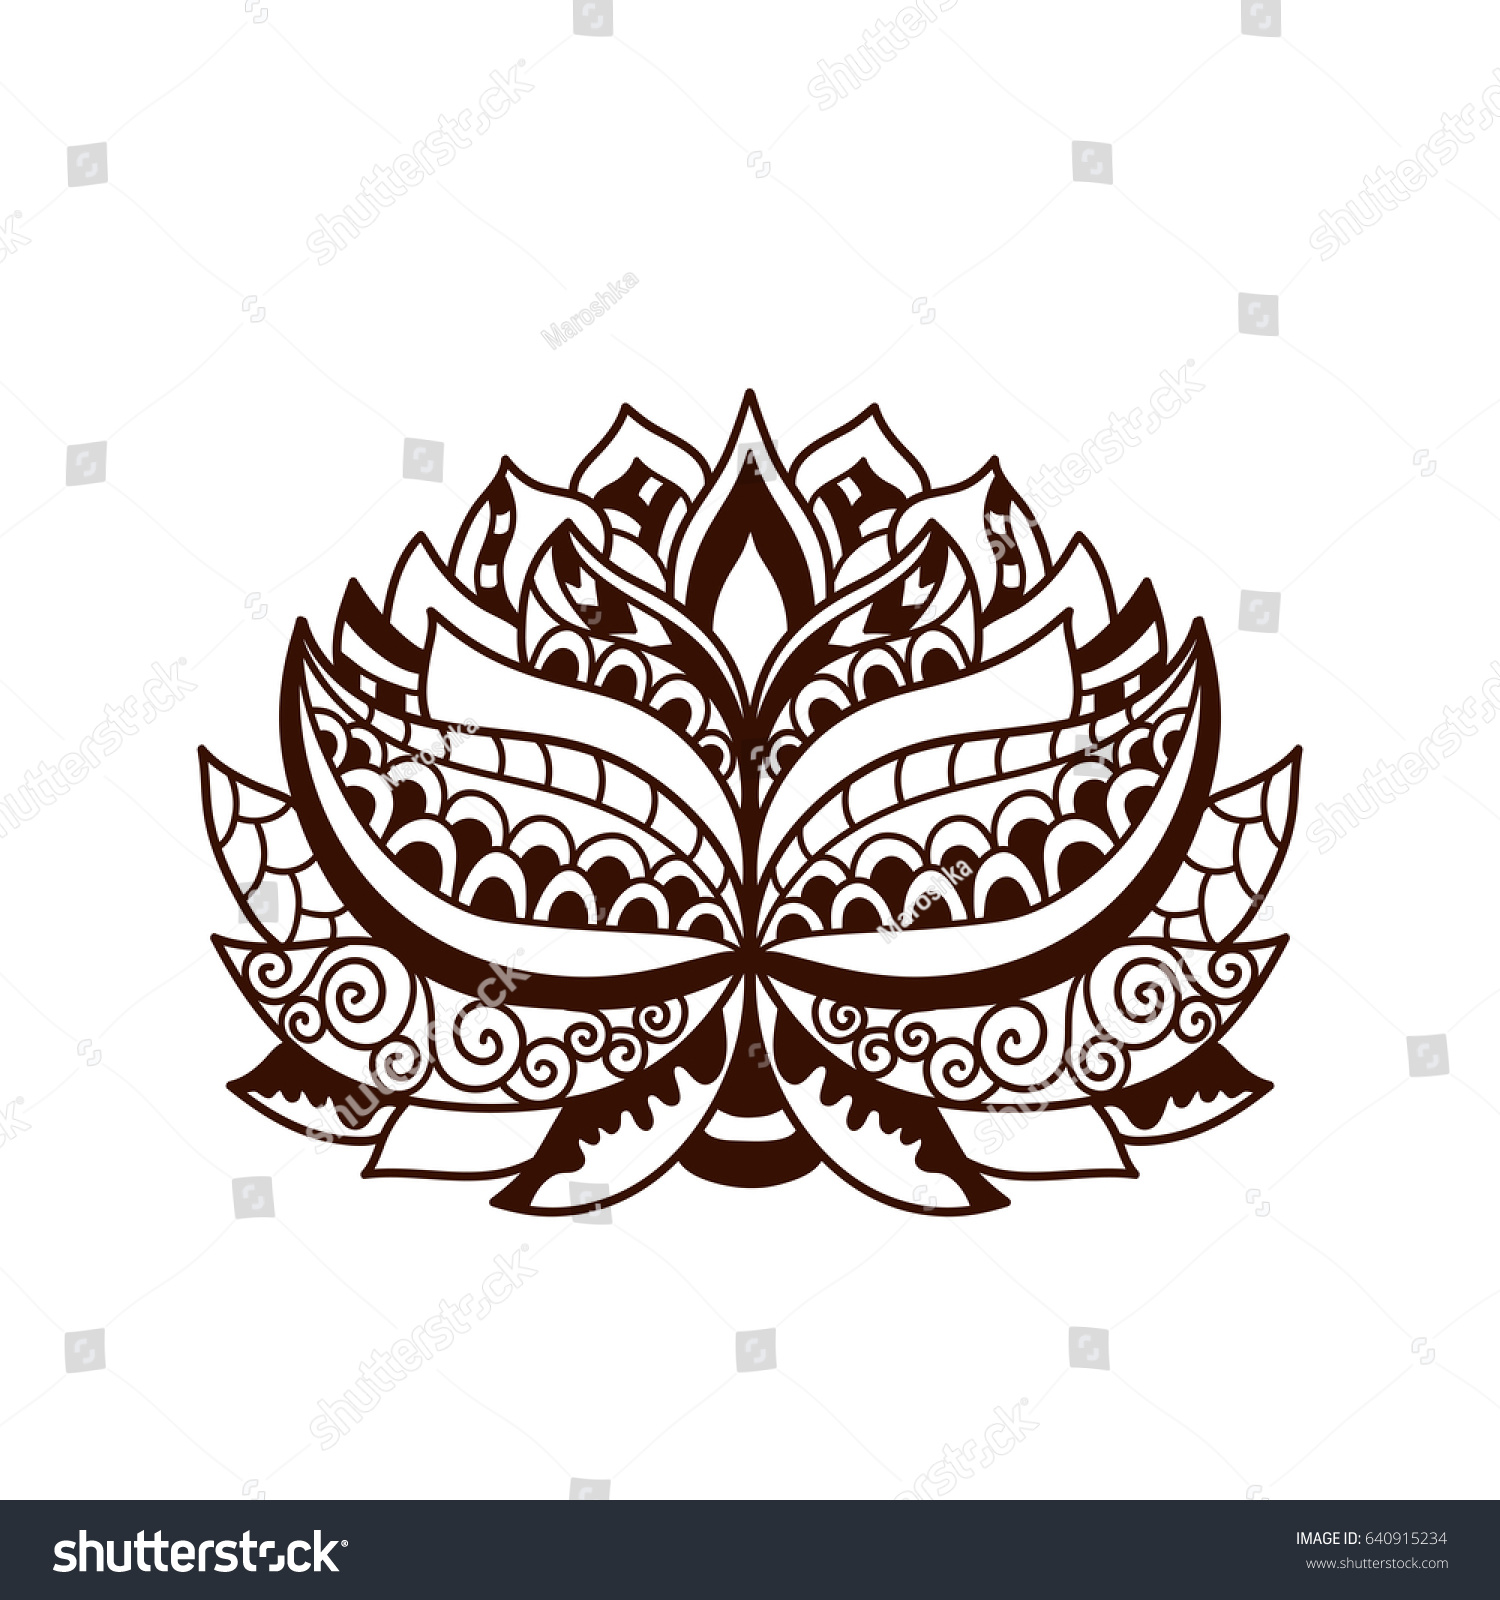 Henna tattoo doodle vector lotus flower stock vector hd royalty henna tattoo doodle vector lotus flower on white background mehndi design abstract floral element izmirmasajfo Image collections